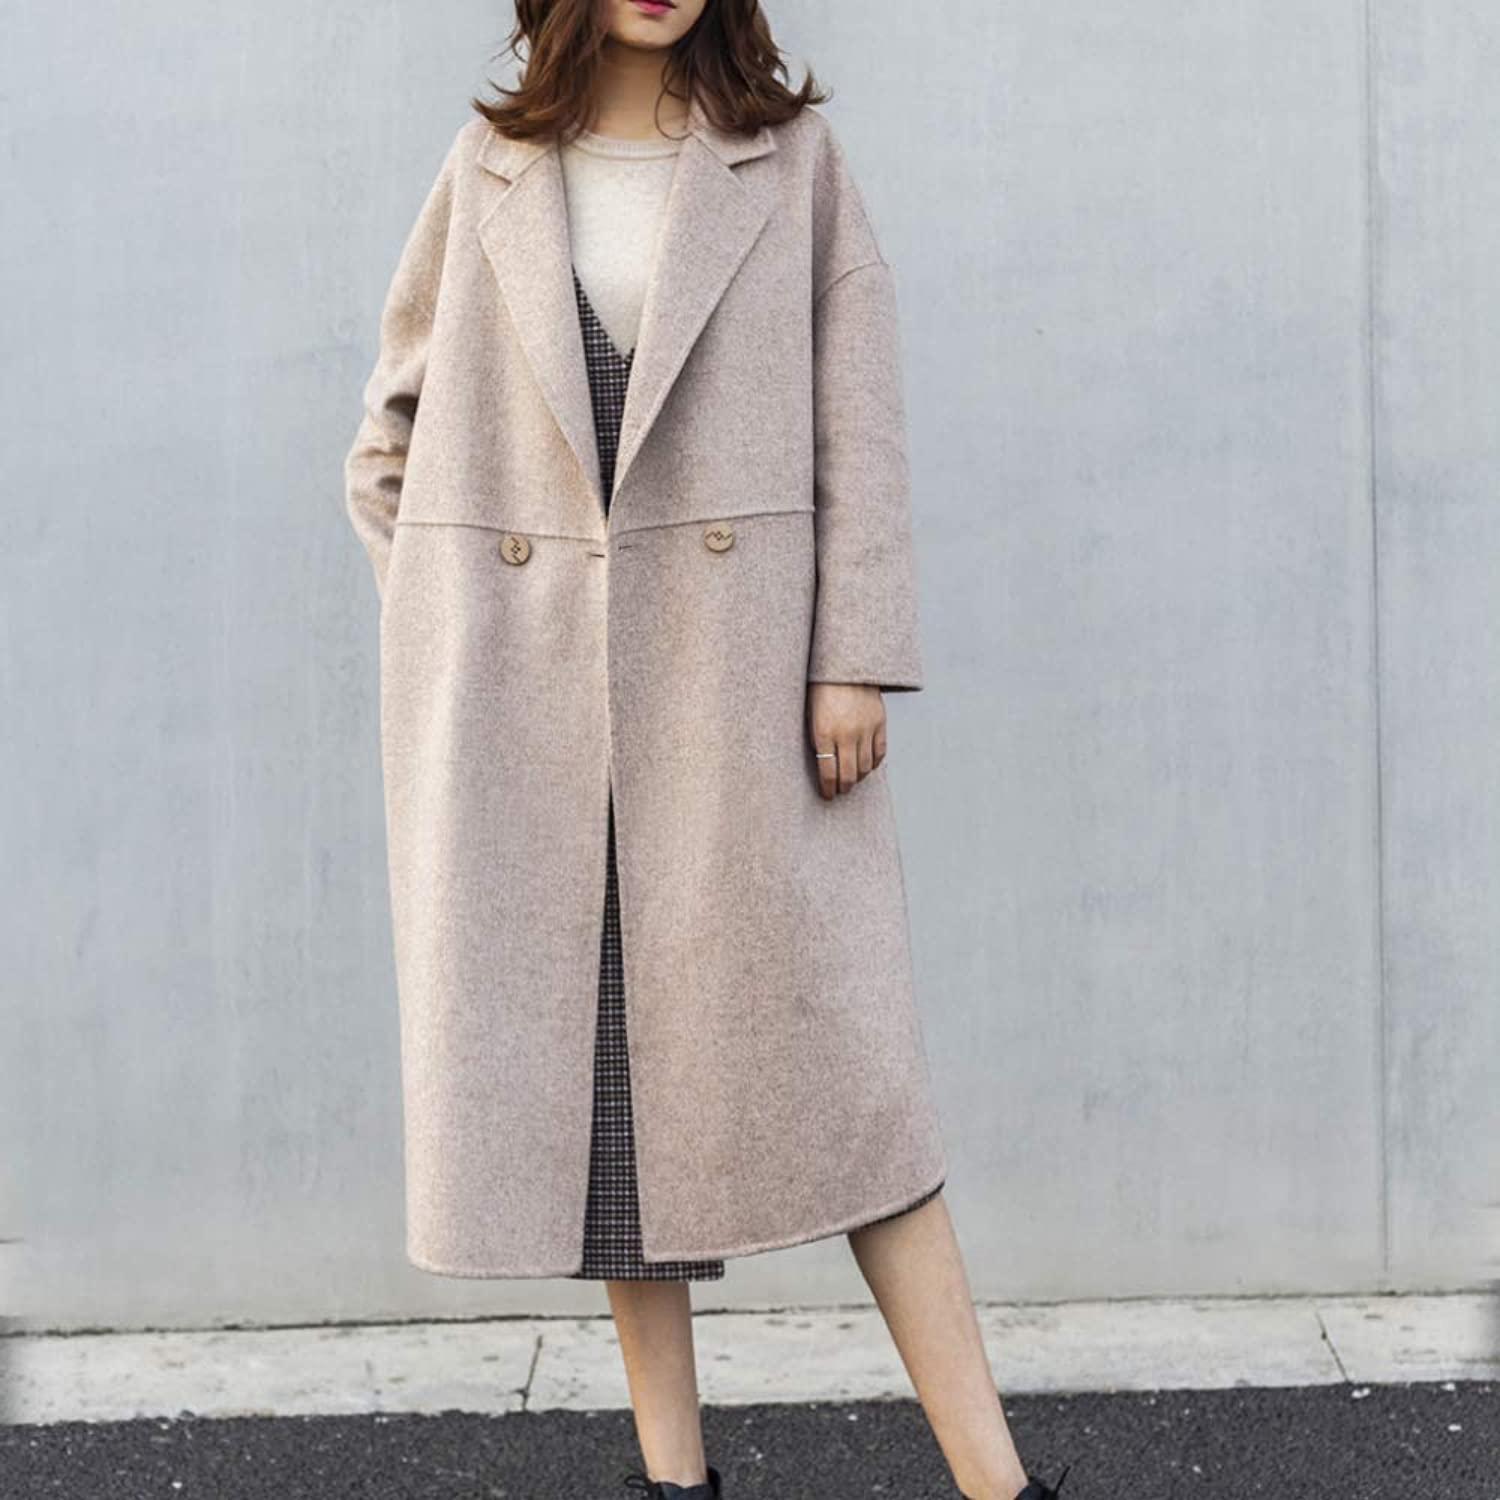 Overcoat for Women Winter, Simple Loose Casual DoubleFaced Woolen Cashmere Warm Coat,BeigeS